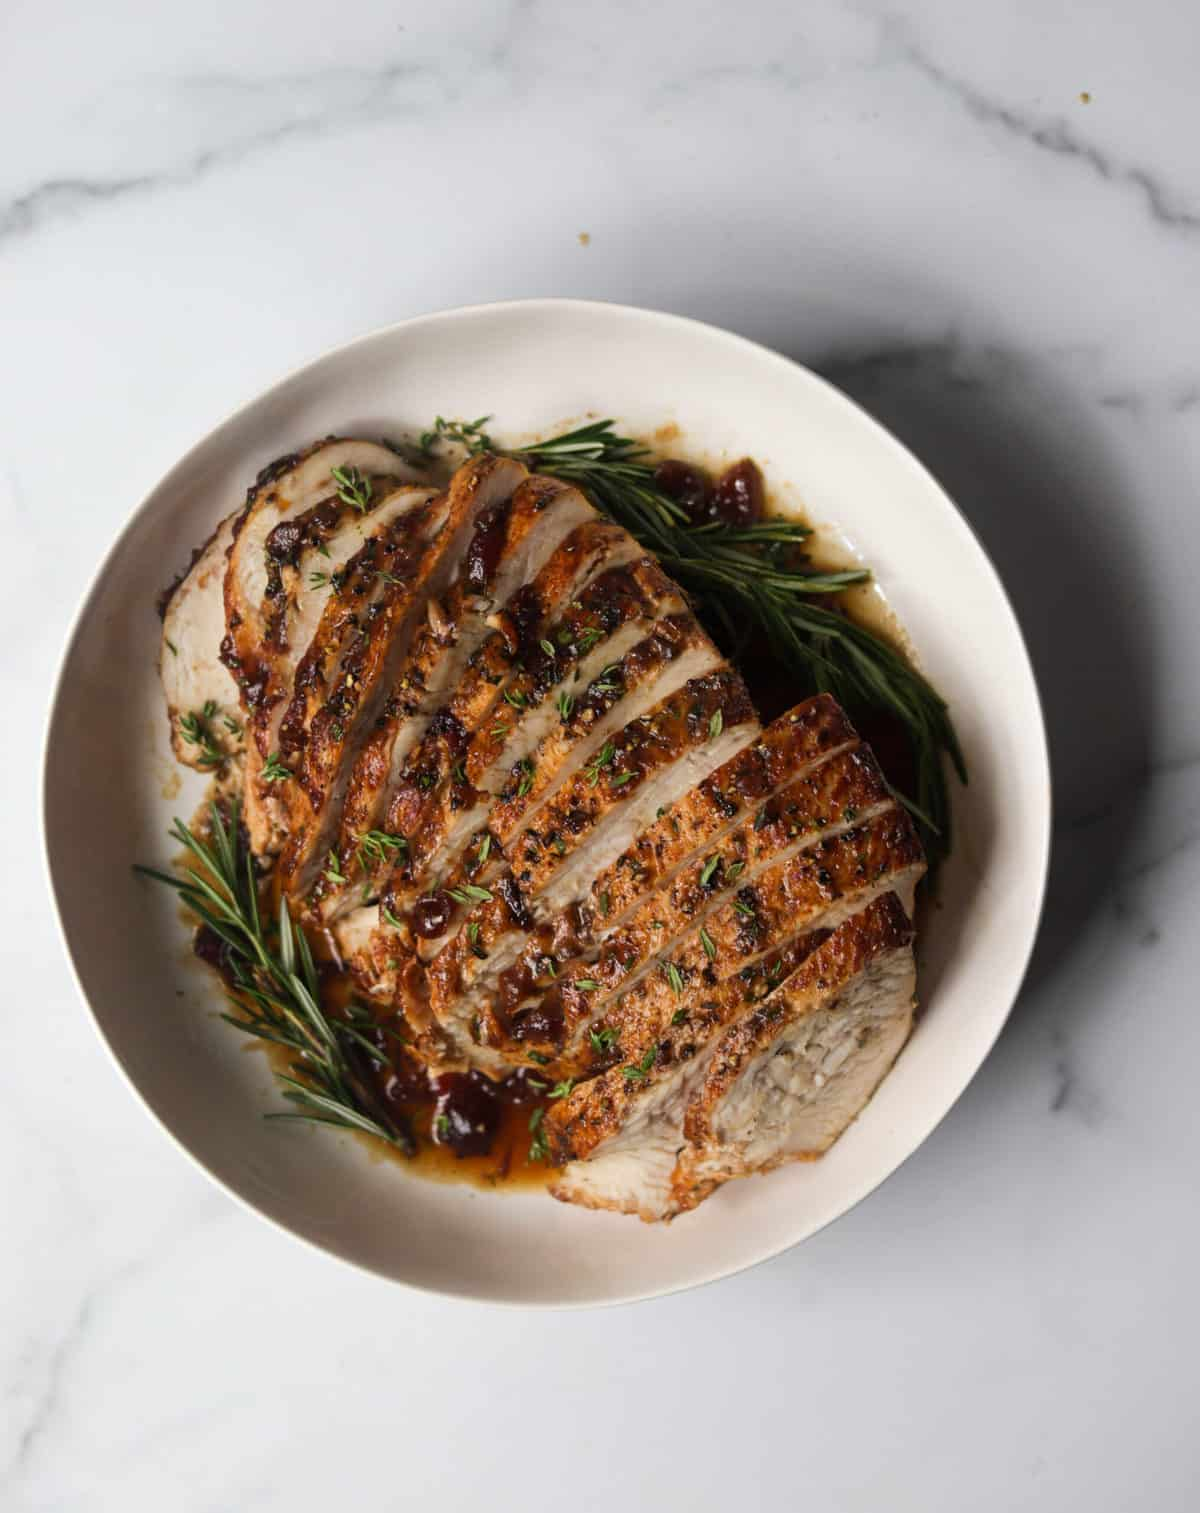 An overhead shot of dutch oven turkey breast on a platter with herbs and cranberries.